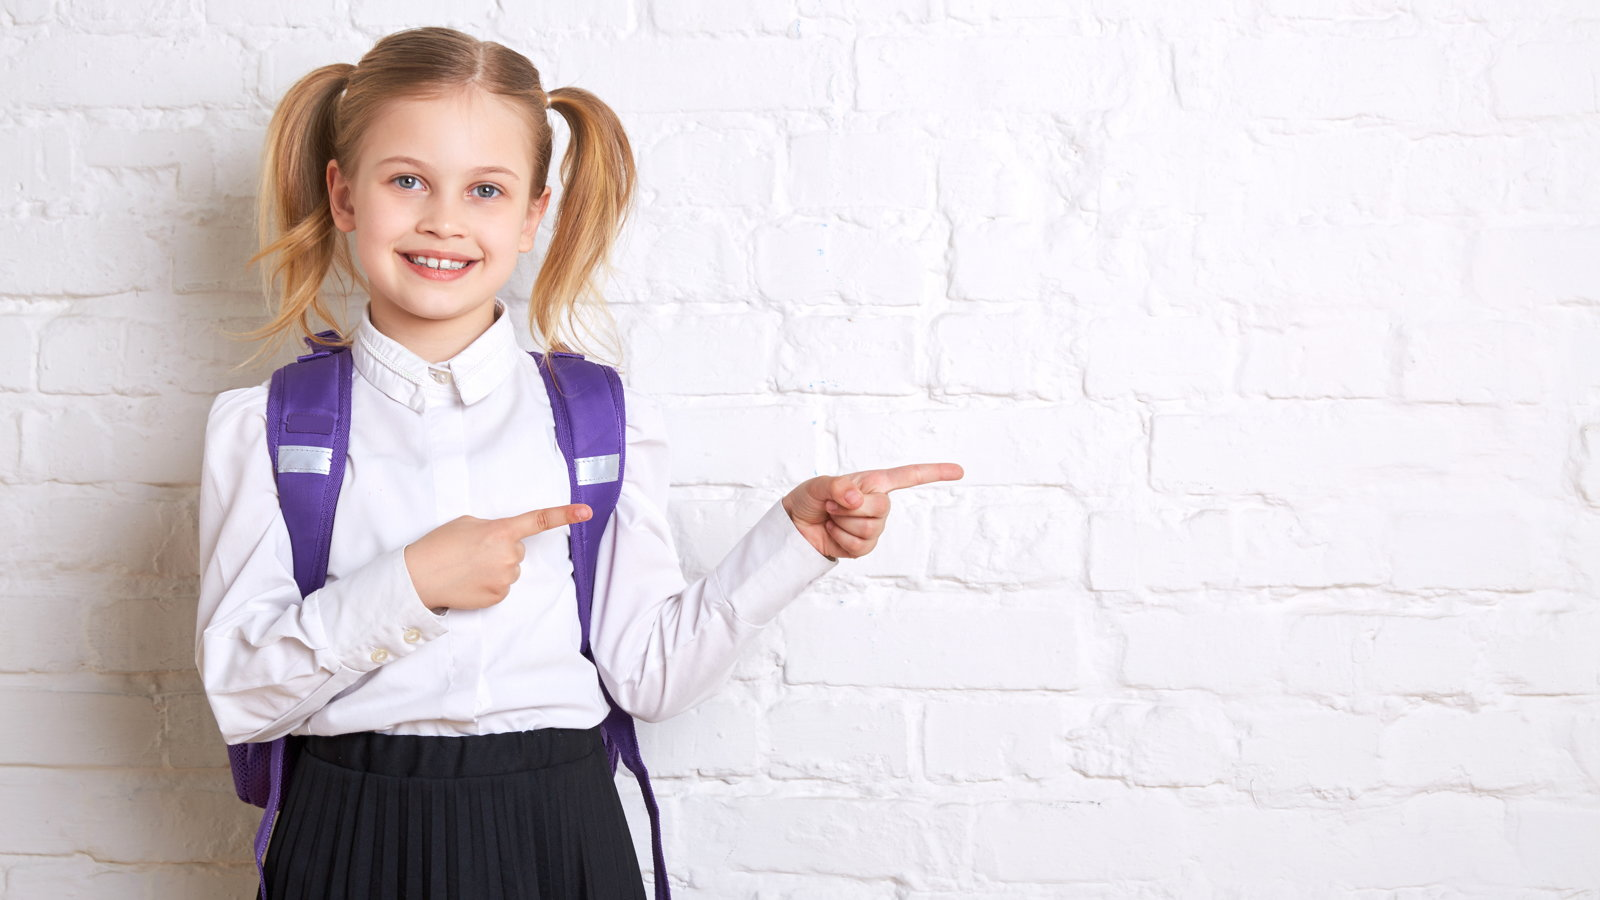 girl wearing school uniform with backpack